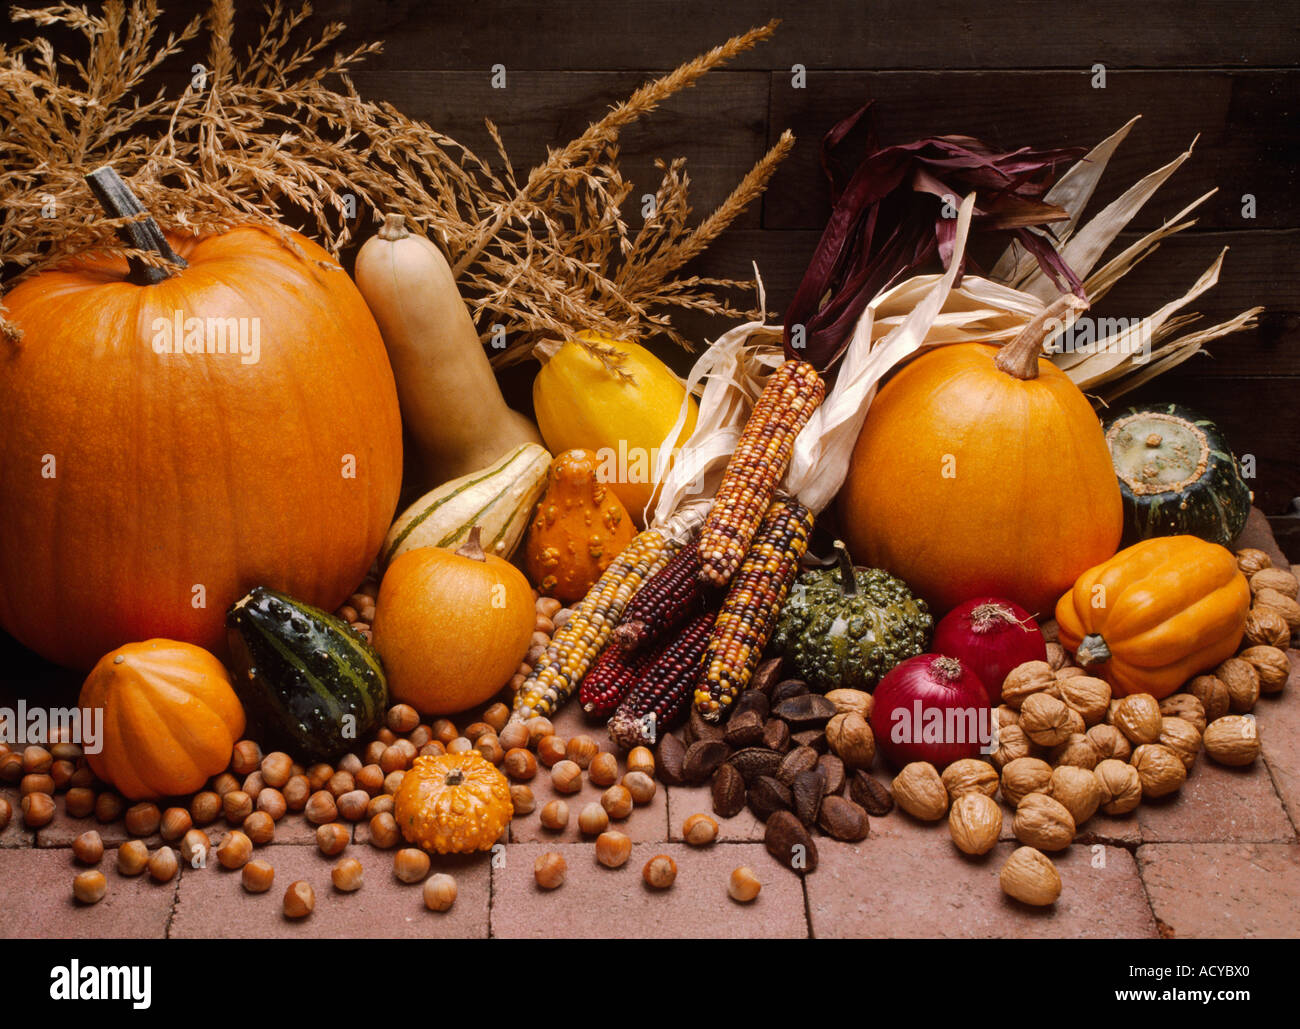 Live Wallpaper Fall Leaves Fall Harvest Of Pumpkins Gourds Onions Squash Indian Corn